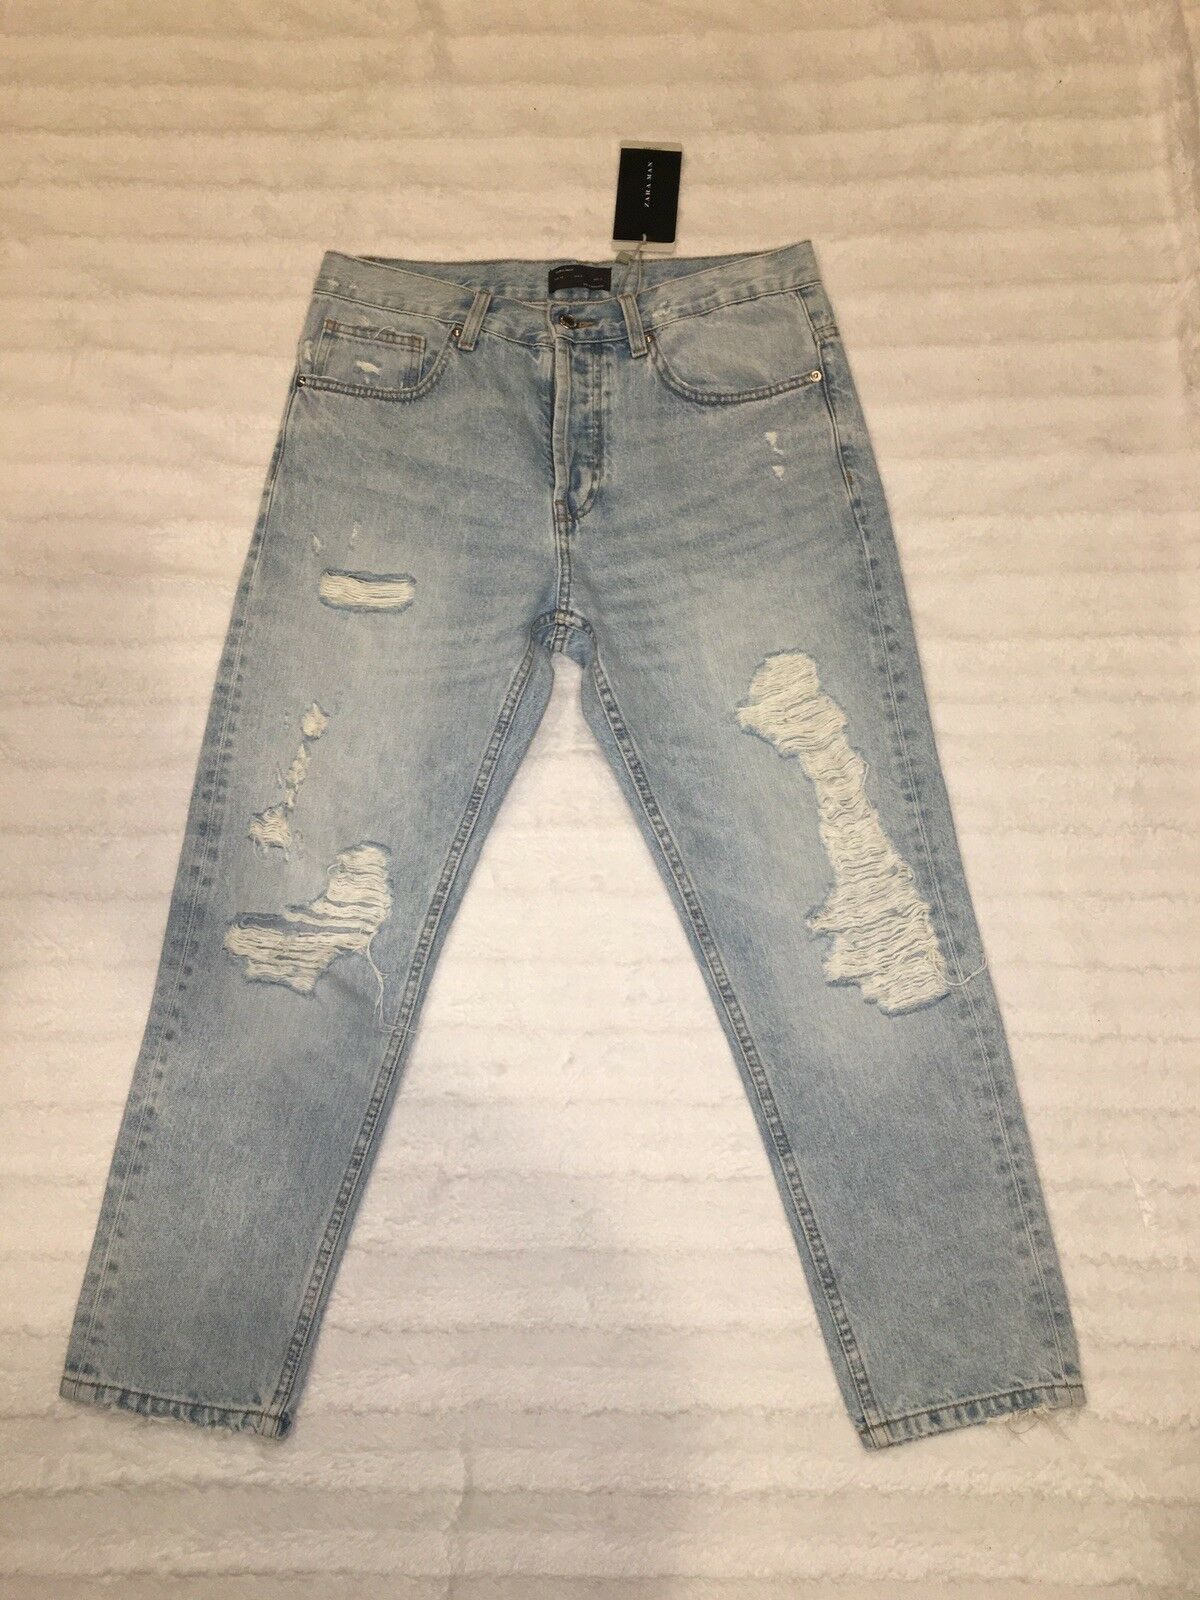 Zara Man Distressed Ripped Jeans ZMDC Goods Slim Fit Button Fly Size 31 NWT